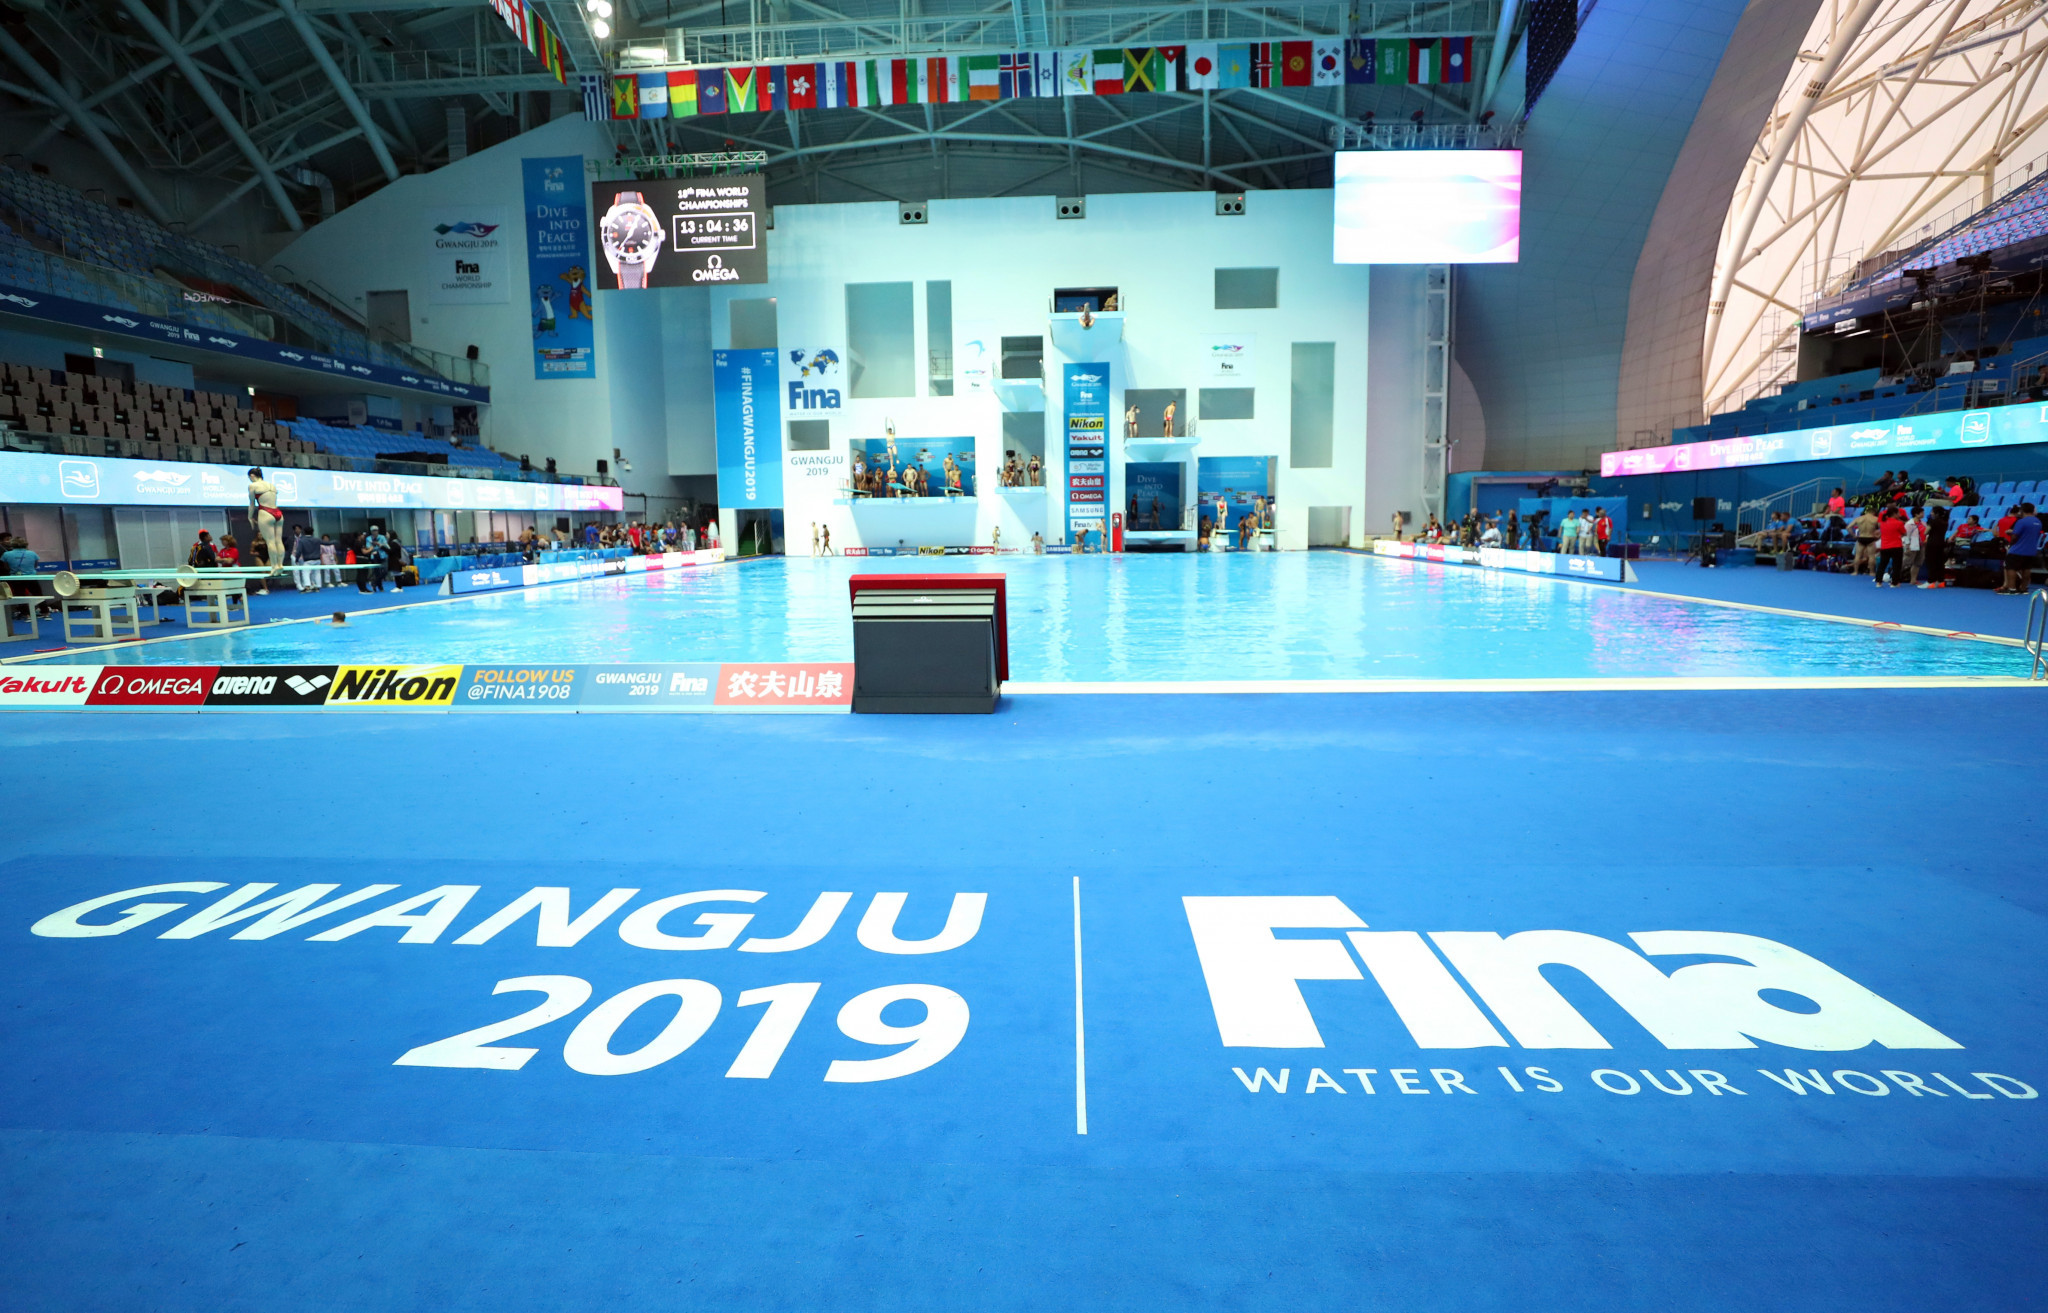 Largest-ever World Aquatics Championships poised to begin in Gwangju